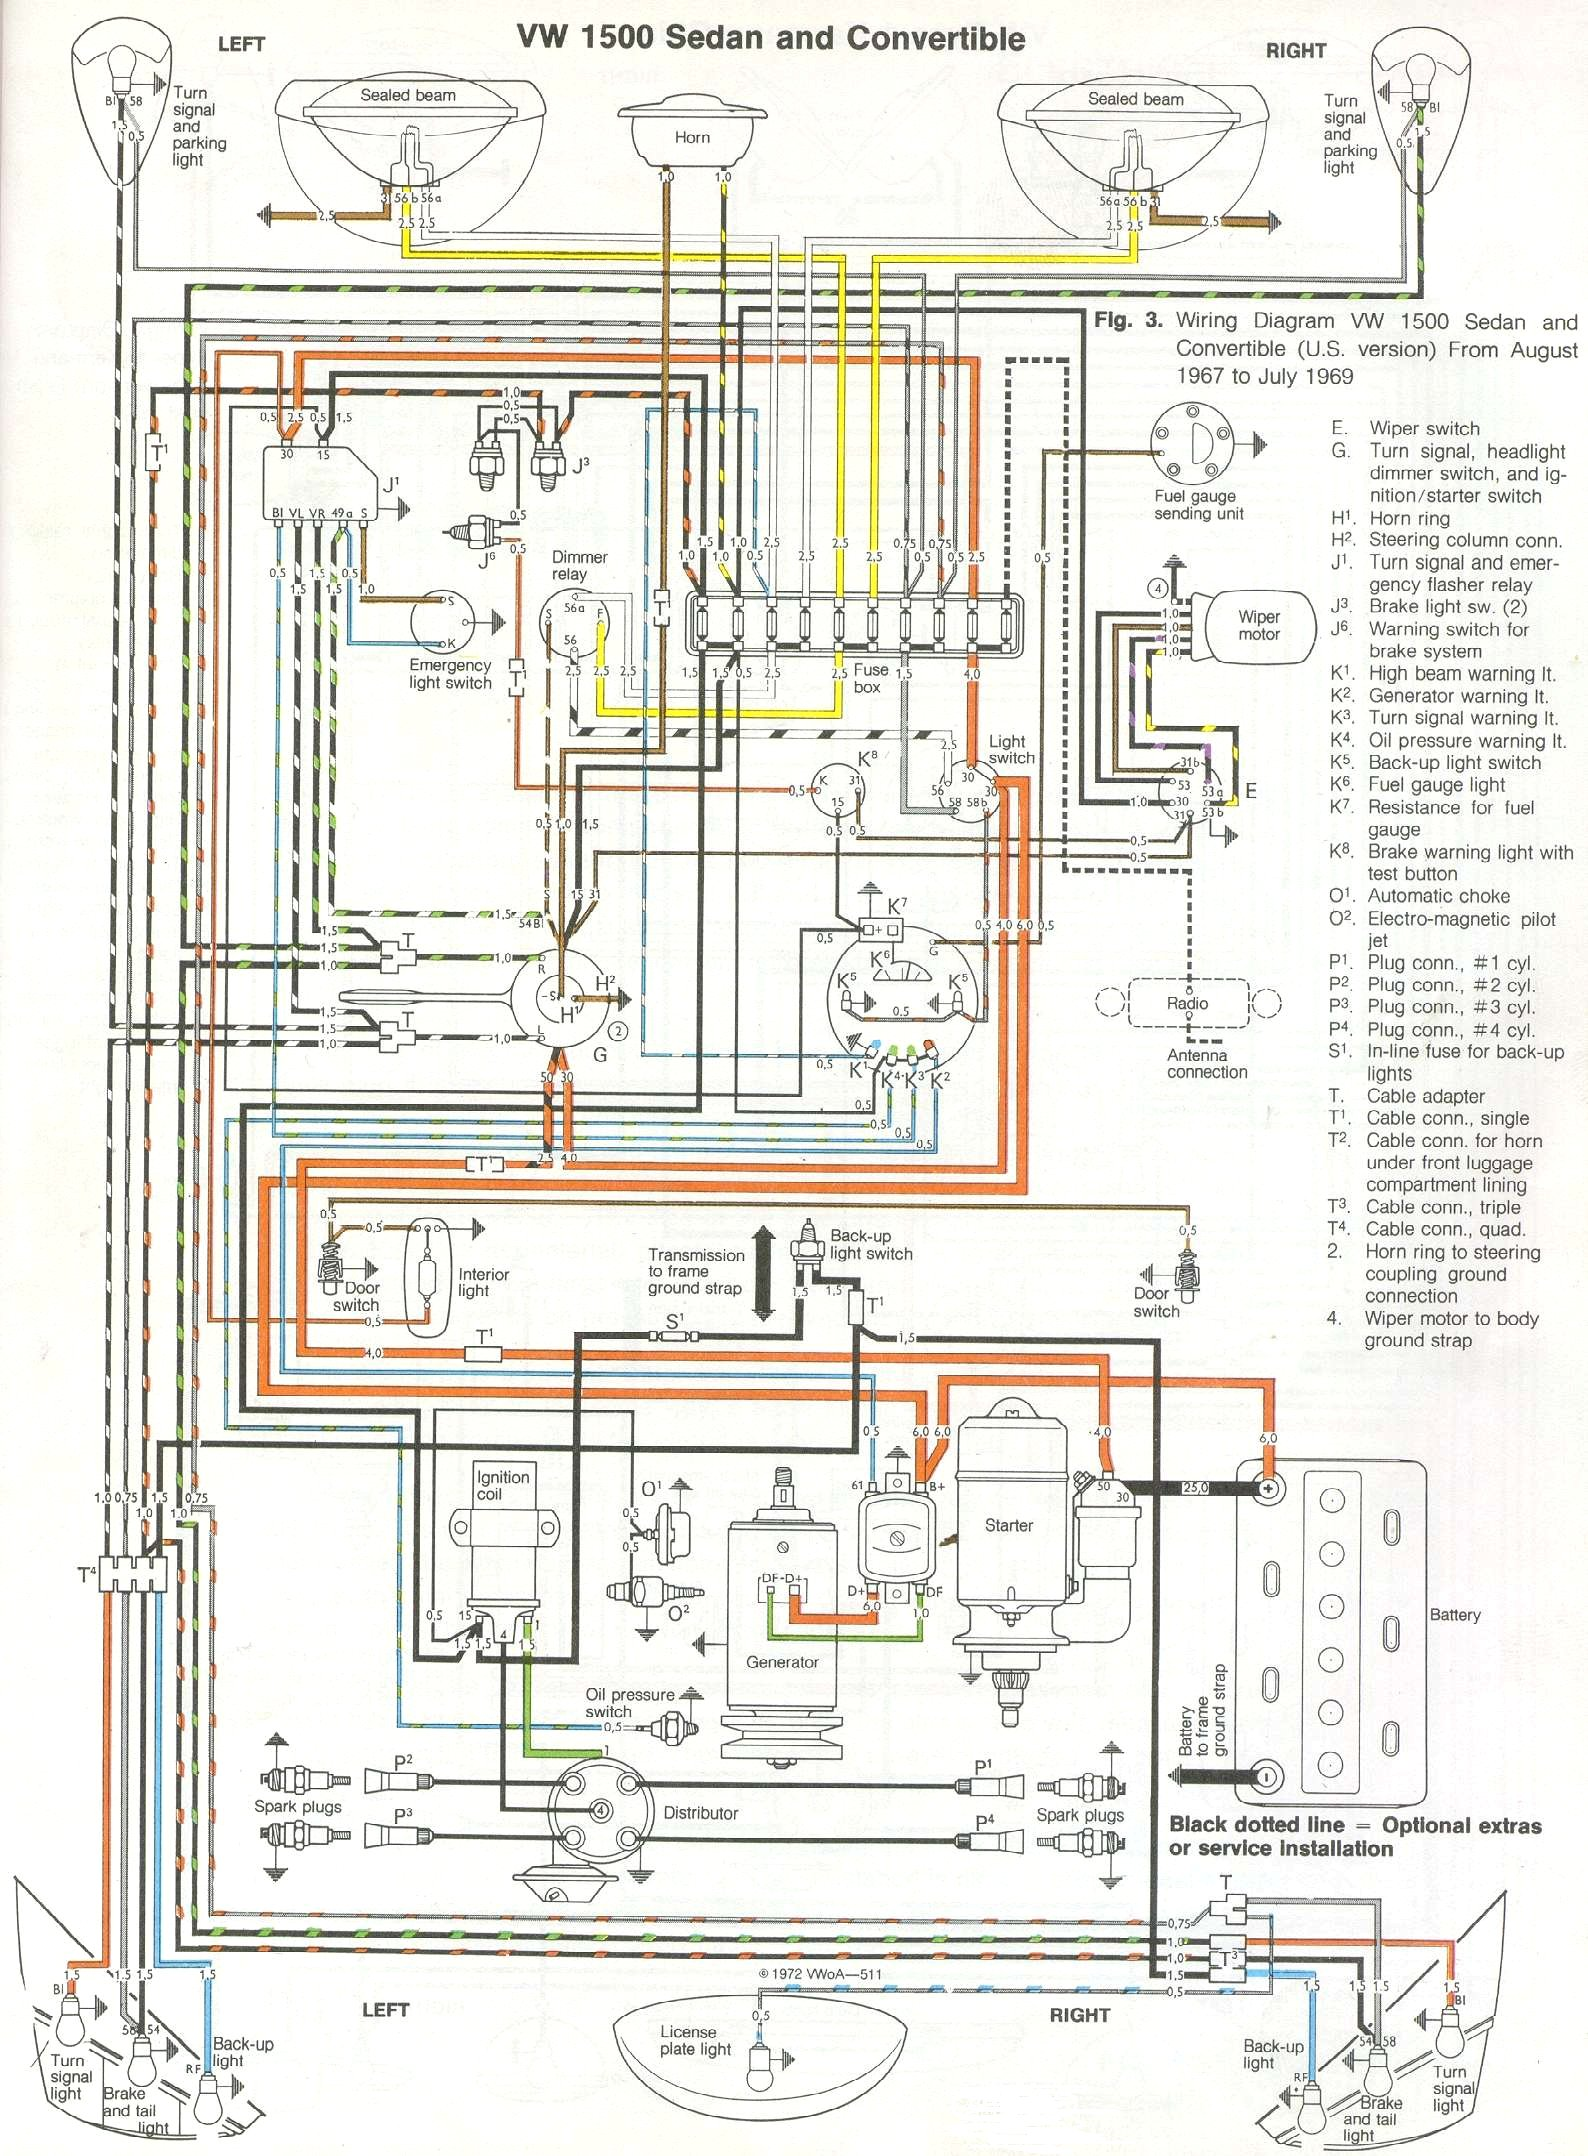 1970 Vw Wiring Diagram - Wiring Diagram Dash  Vw Type Coil Wiring Diagram on vw bus wiring diagram, type 1 vw engine diagram, vw bug wiring diagram, vw gti wiring diagram, vw r32 wiring diagram, 72 vw wiring diagram, vw thing wiring diagram, vw 1600 engine diagram, jaguar e type wiring diagram, vw engine wiring diagram, vw type 2 wiring diagram, air cooled vw wiring diagram, 1965 vw wiring diagram, vw type 4 wiring diagram, vw jetta wiring diagram, vw alternator conversion wiring diagram, vw ignition wiring diagram, 1973 vw wiring diagram, 1974 vw engine diagram, 68 vw wiring diagram,